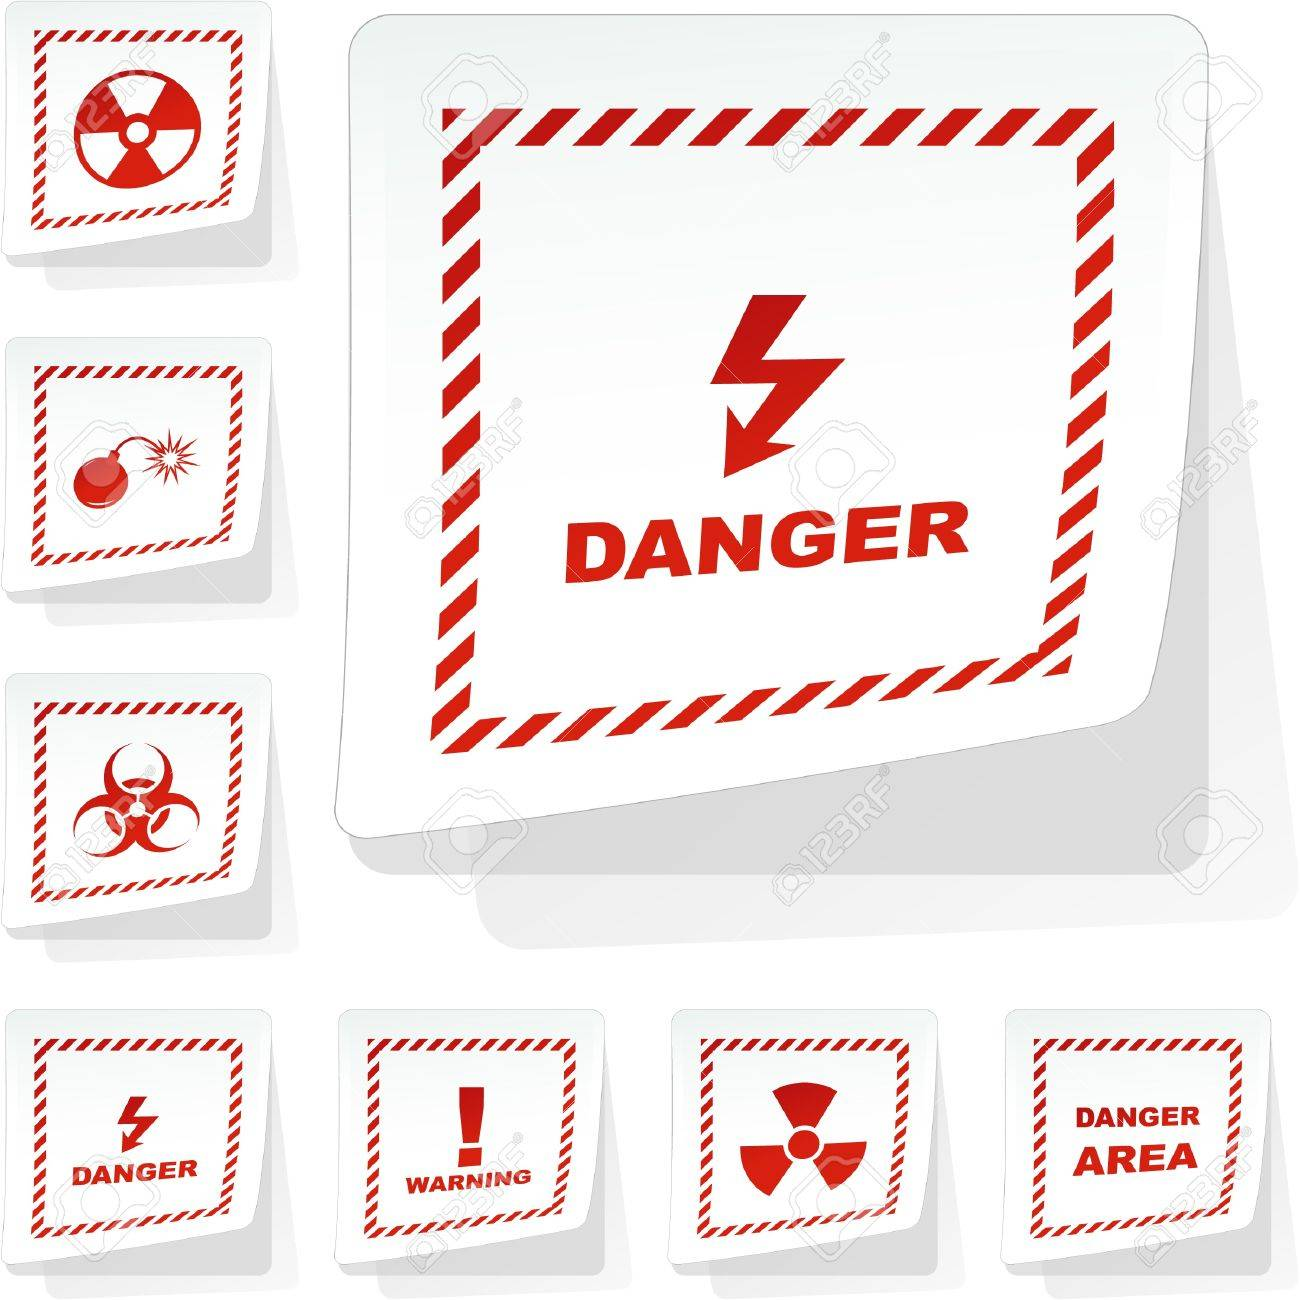 Warning vector stickers. Stock Vector - 8891049